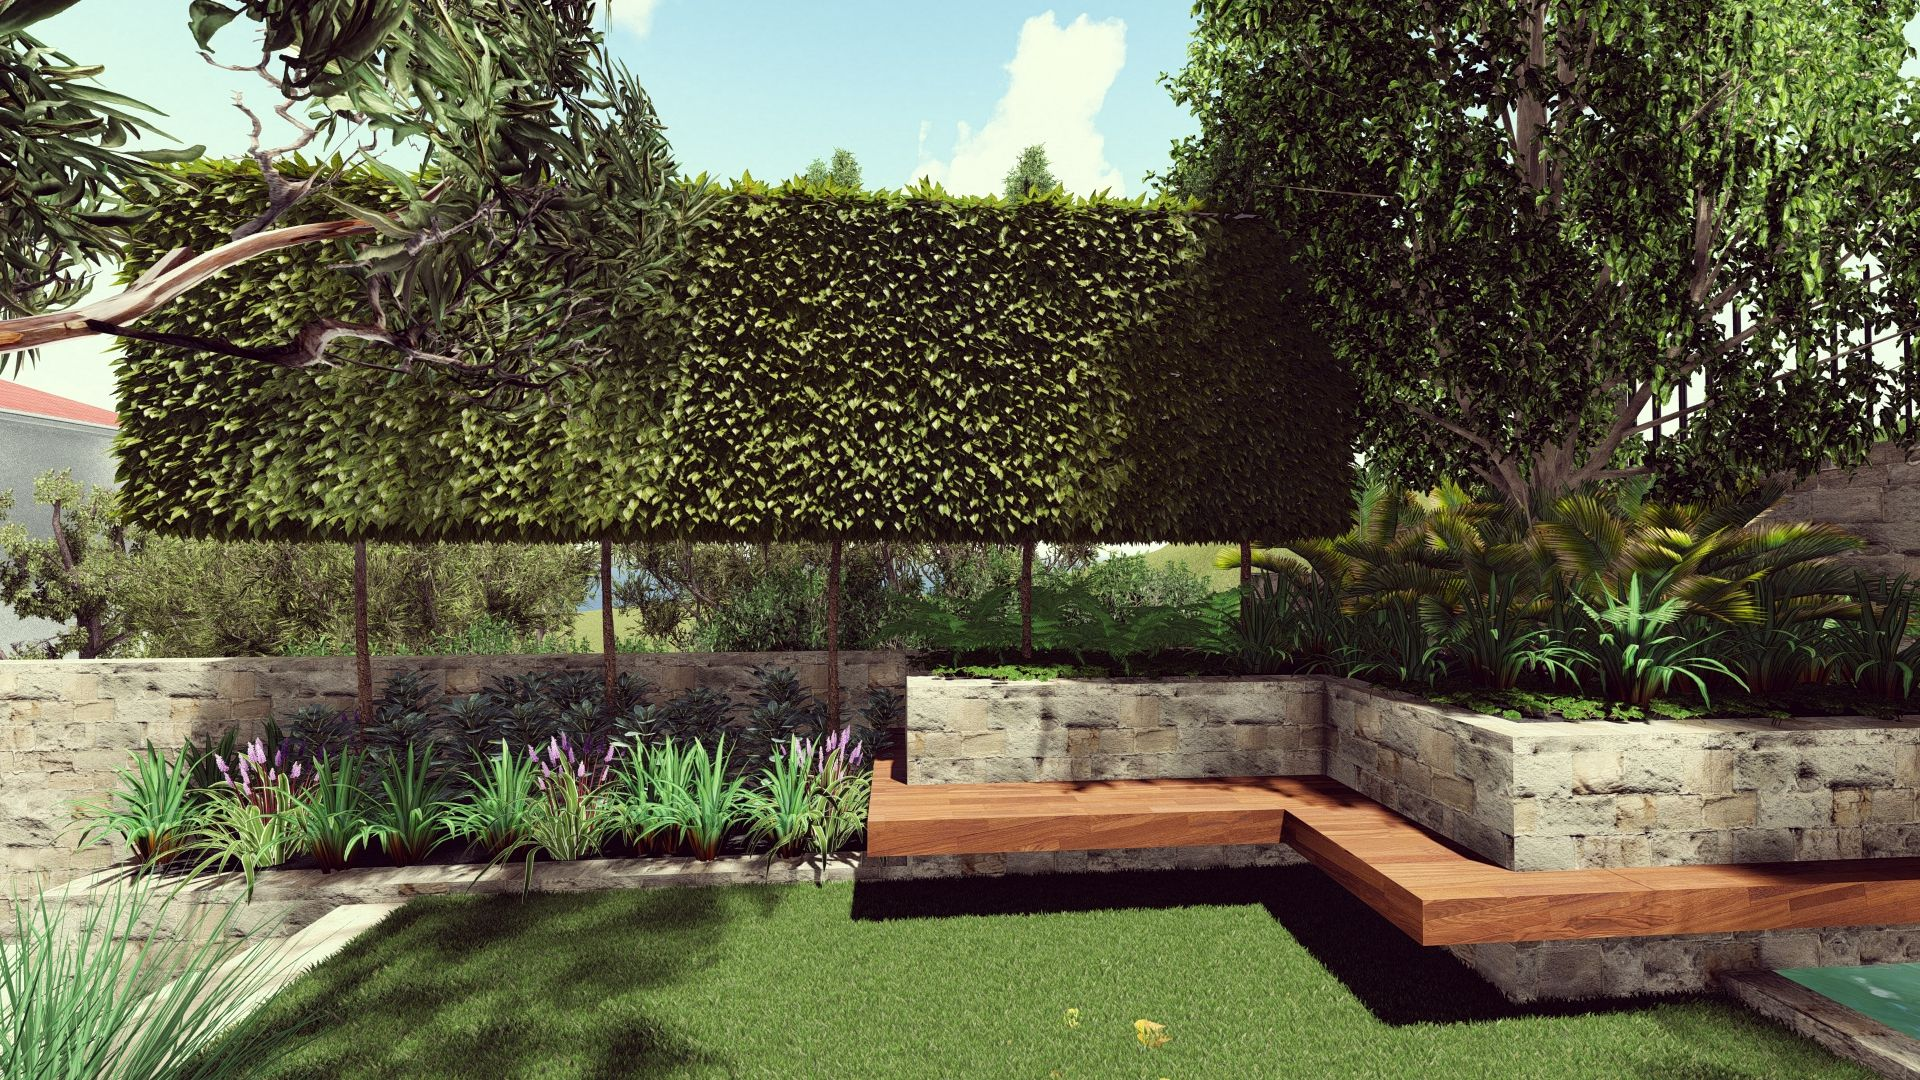 Blue Mountains Garden Plan 3D Model